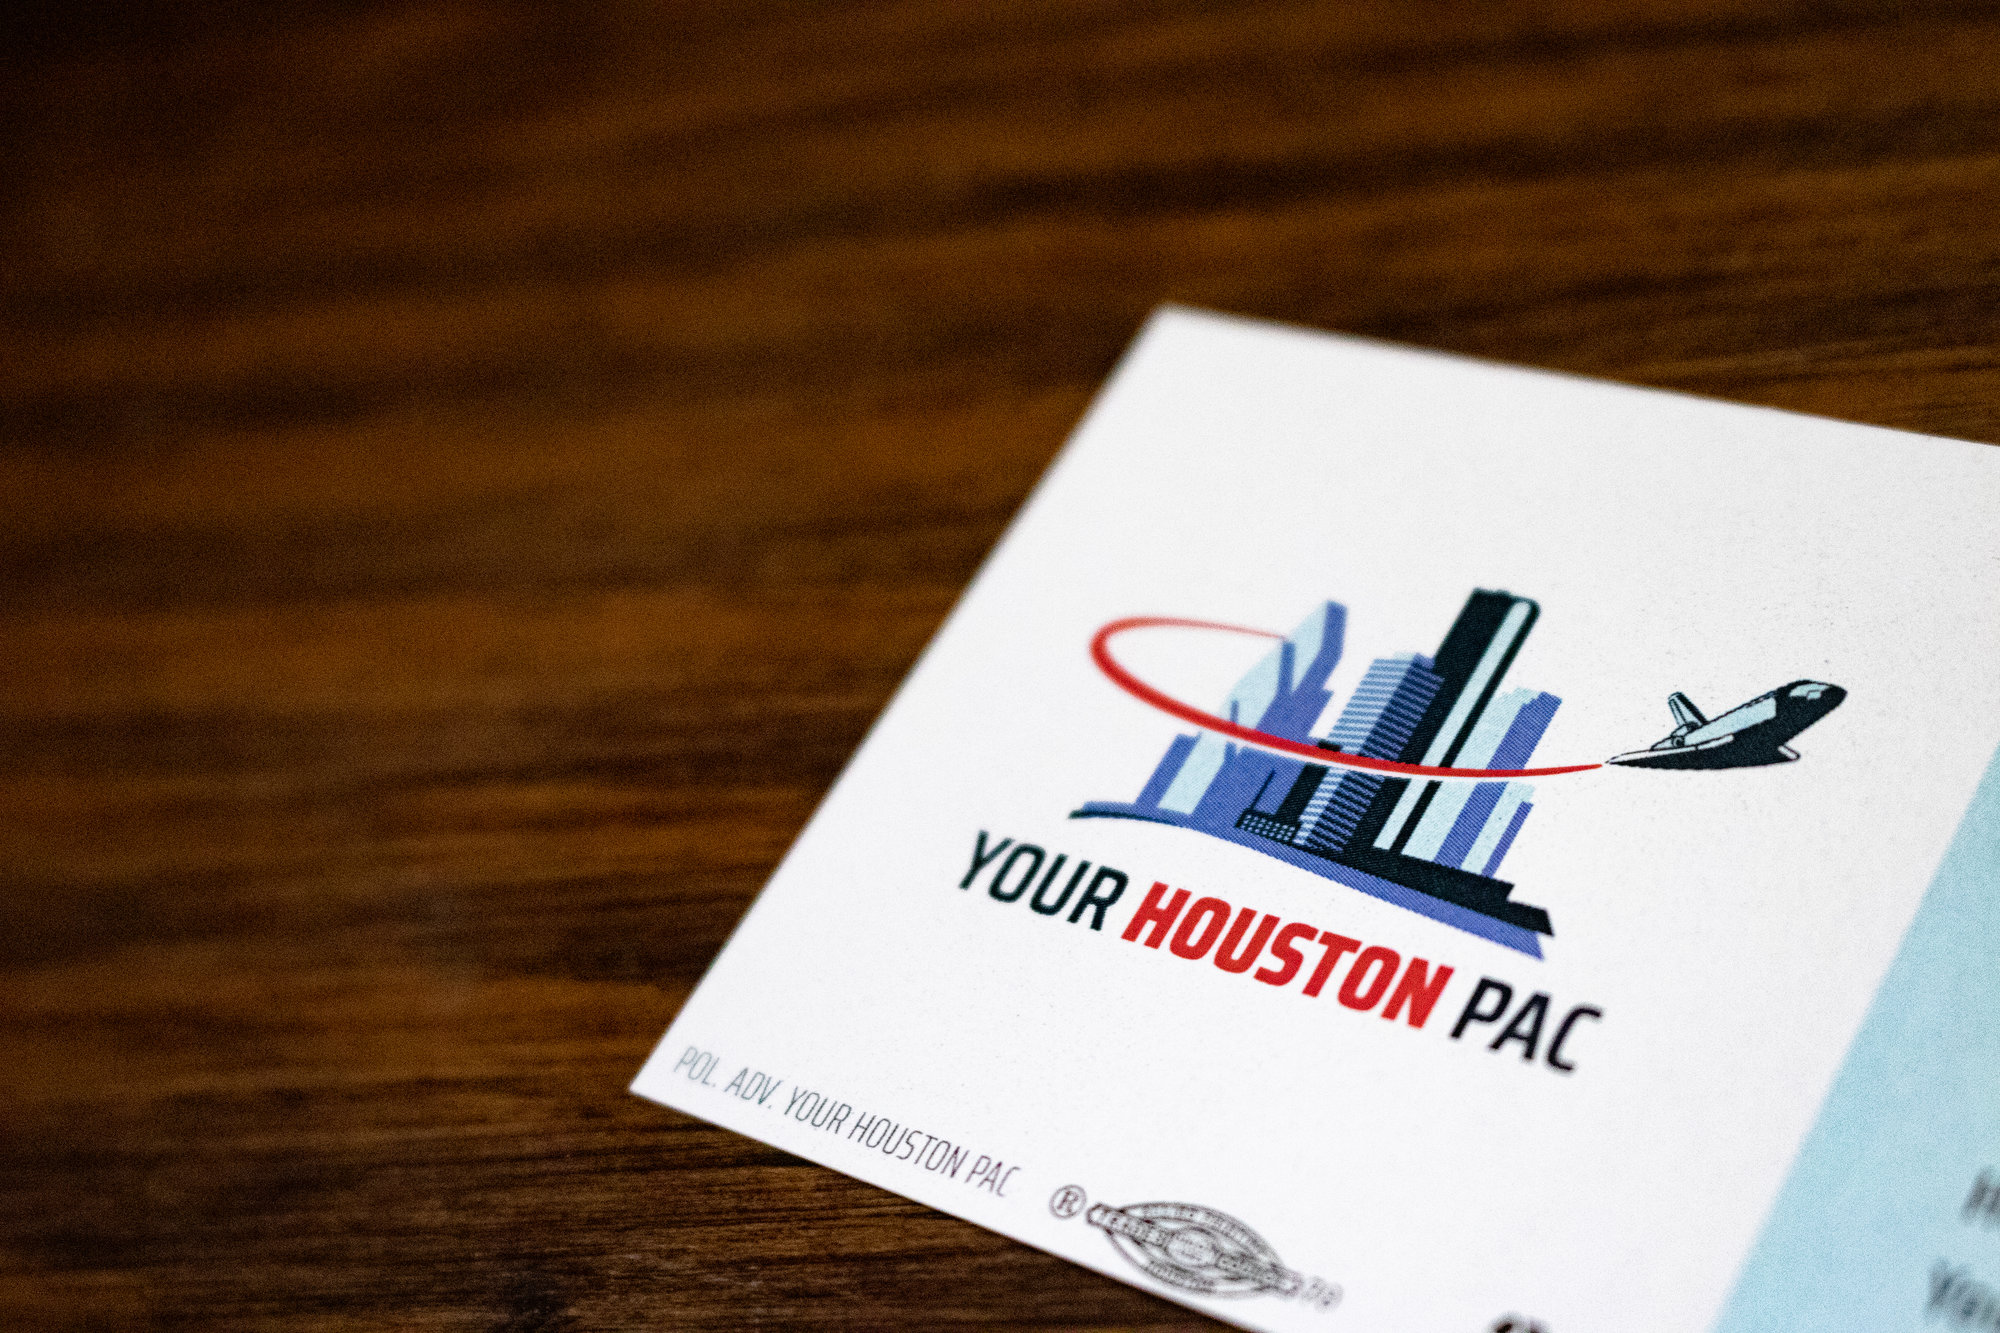 Your Houston PAC is a non-partisan political action committee dedicated to quality of life in Houston.